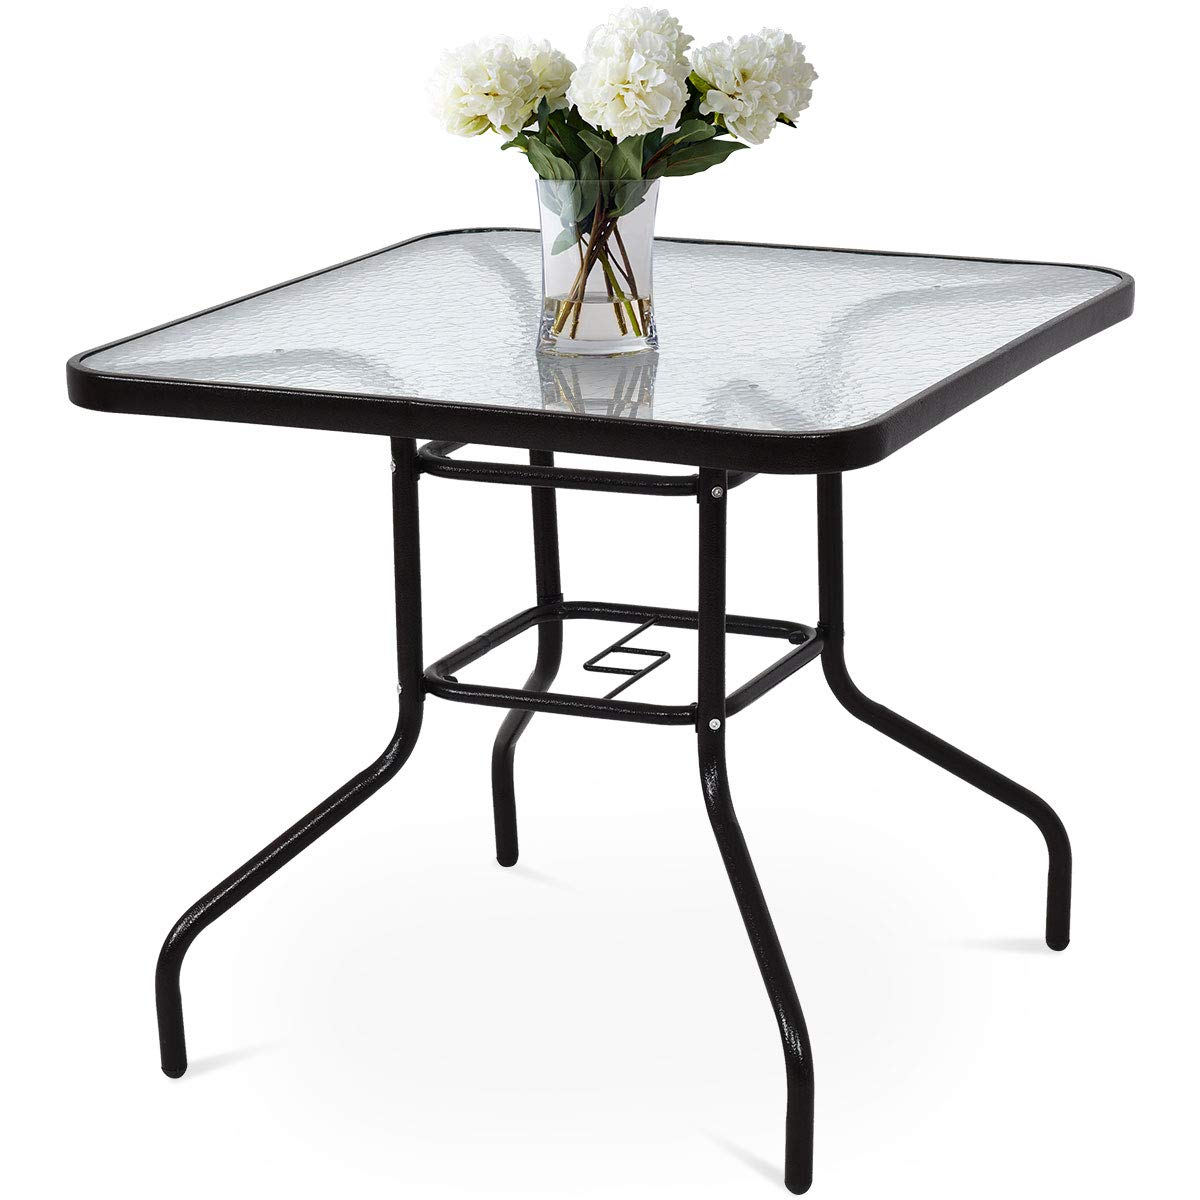 Tangkula 32'' Patio Table Tempered Glass Top Metal Frame Outdoor Garden Poolside Balcony Dining Bistro Table (Square) by Tangkula